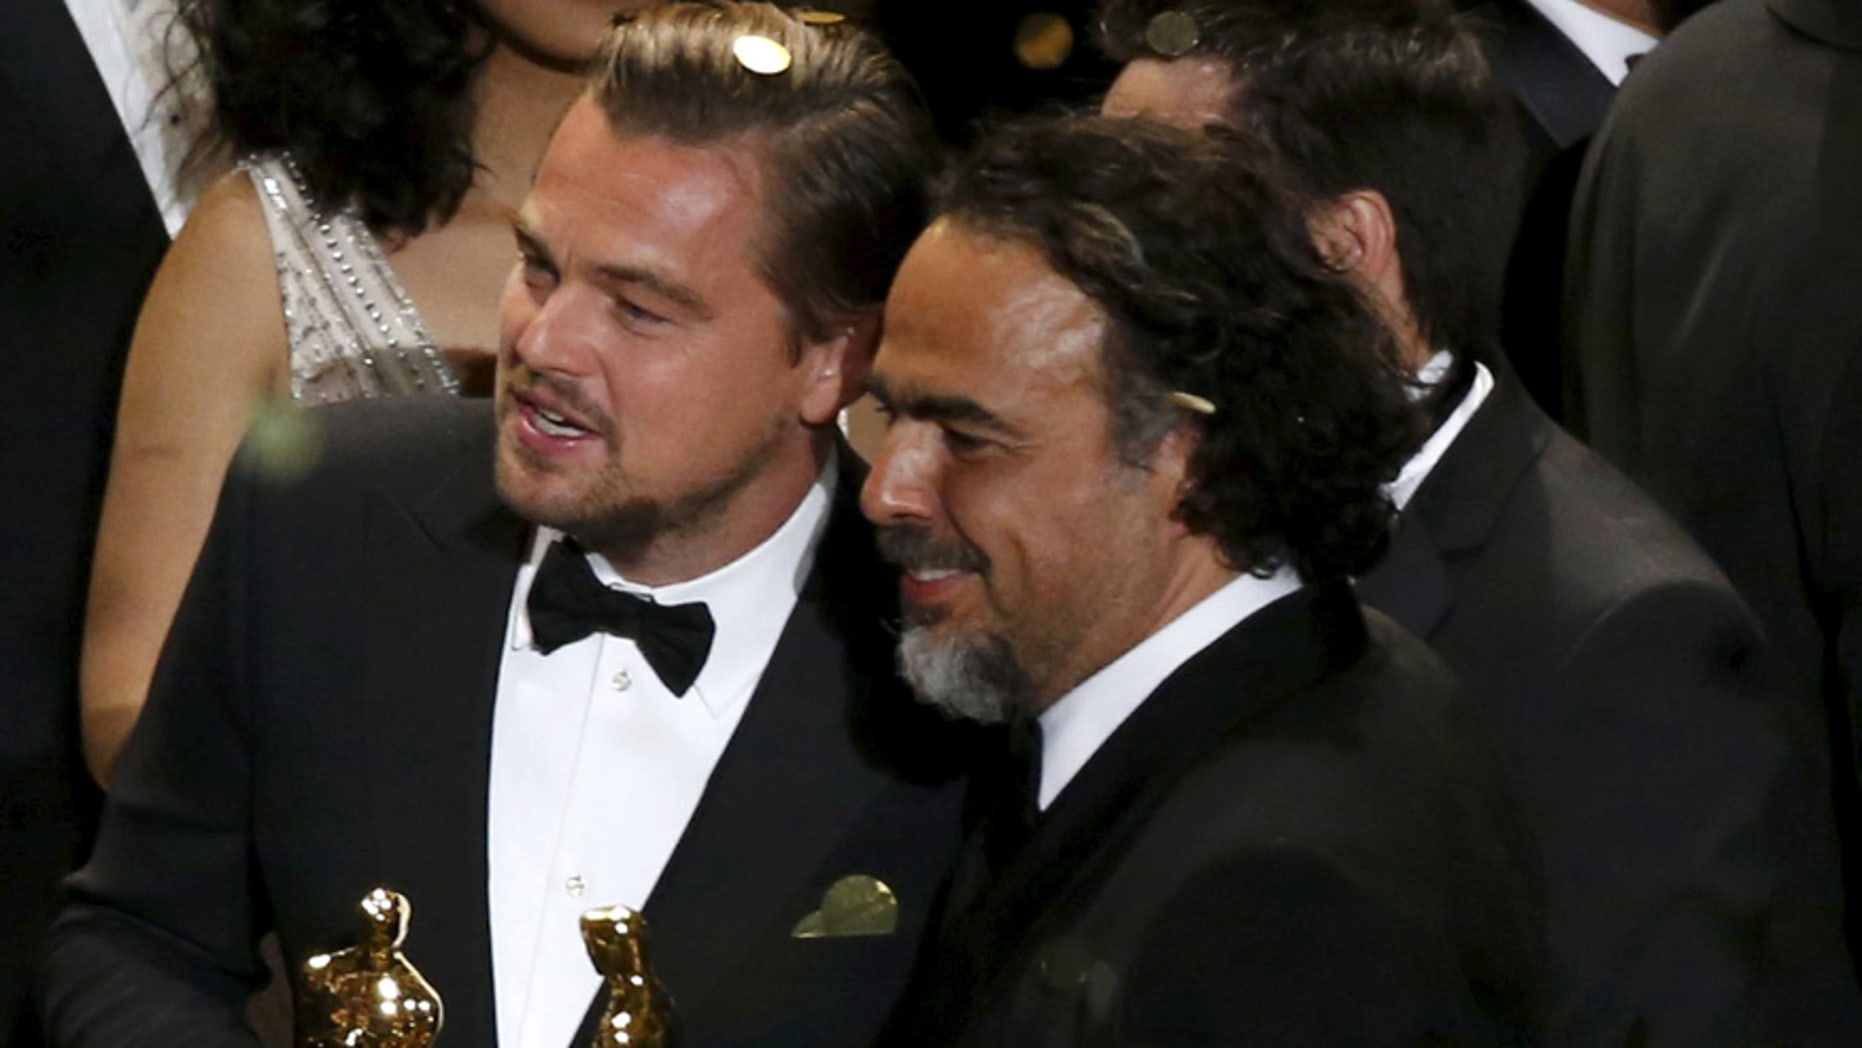 Director Alejandro Inarritu (R) and actor Leonardo DiCaprio hold their Oscars after the end of the awards ceremony at the 88th Academy Awards in Hollywood, California February 28, 2016.   REUTERS/Mario Anzuoni        TPX IMAGES OF THE DAY      - RTS8HAU